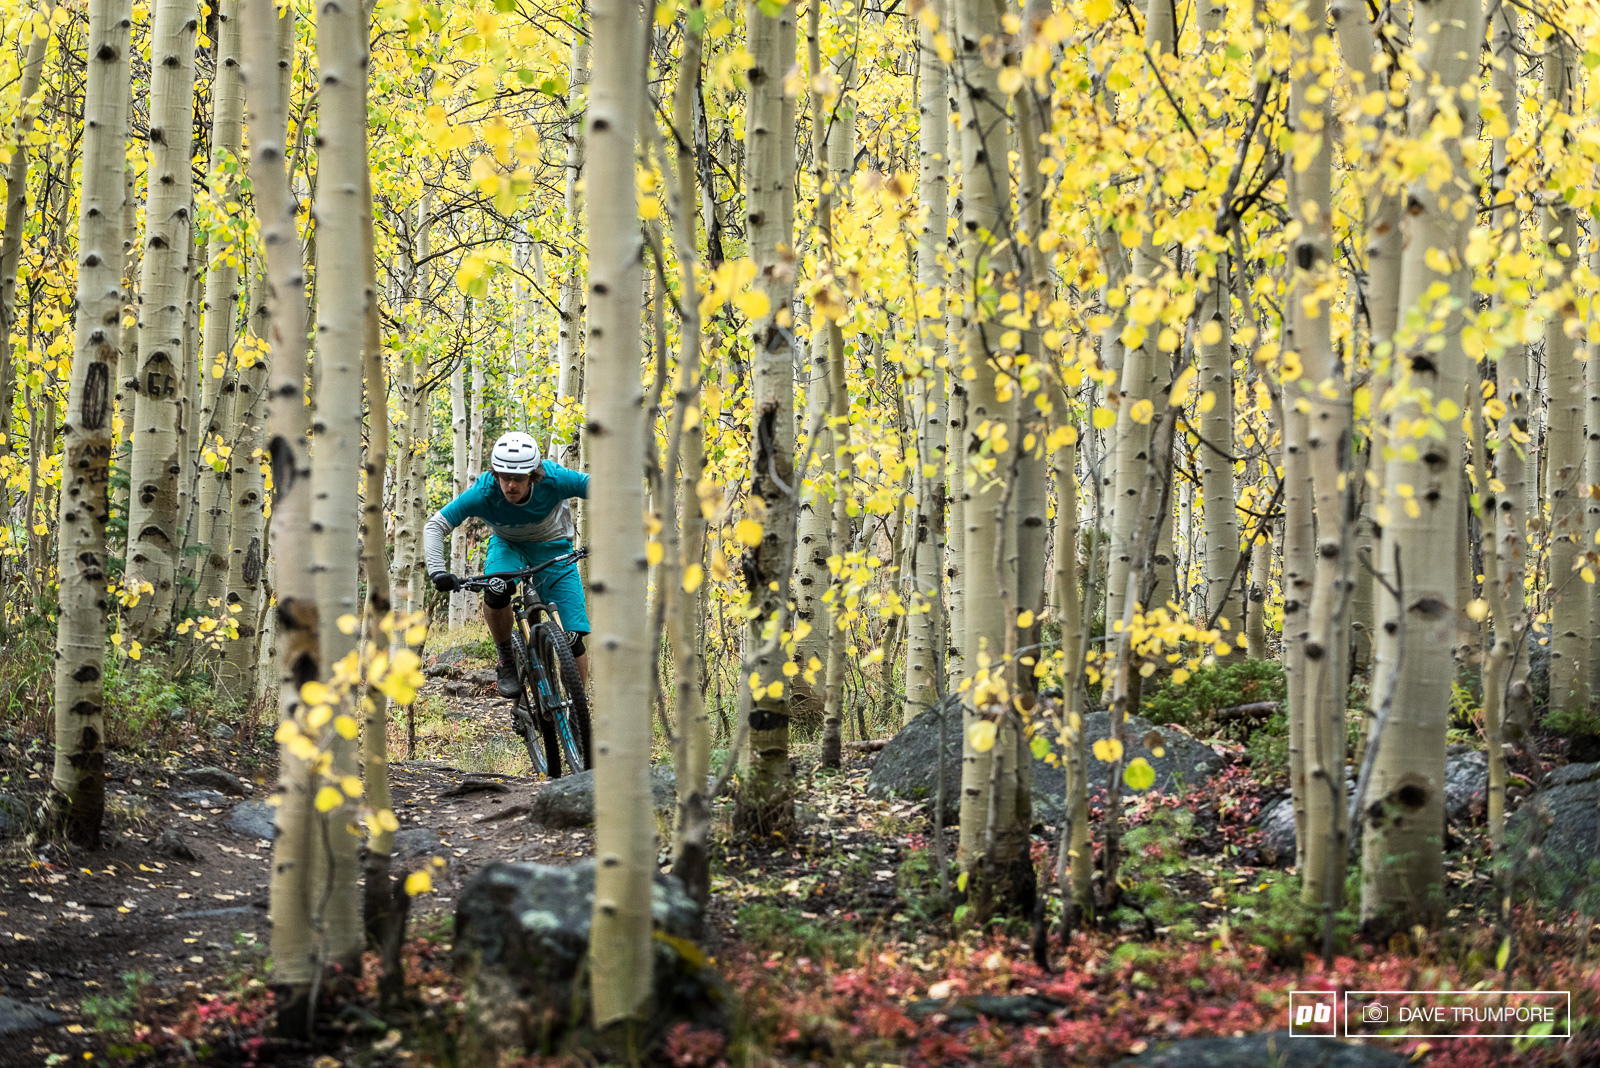 With so much focus on high peaks we almost forgot how much fun zipping through the trees can be.